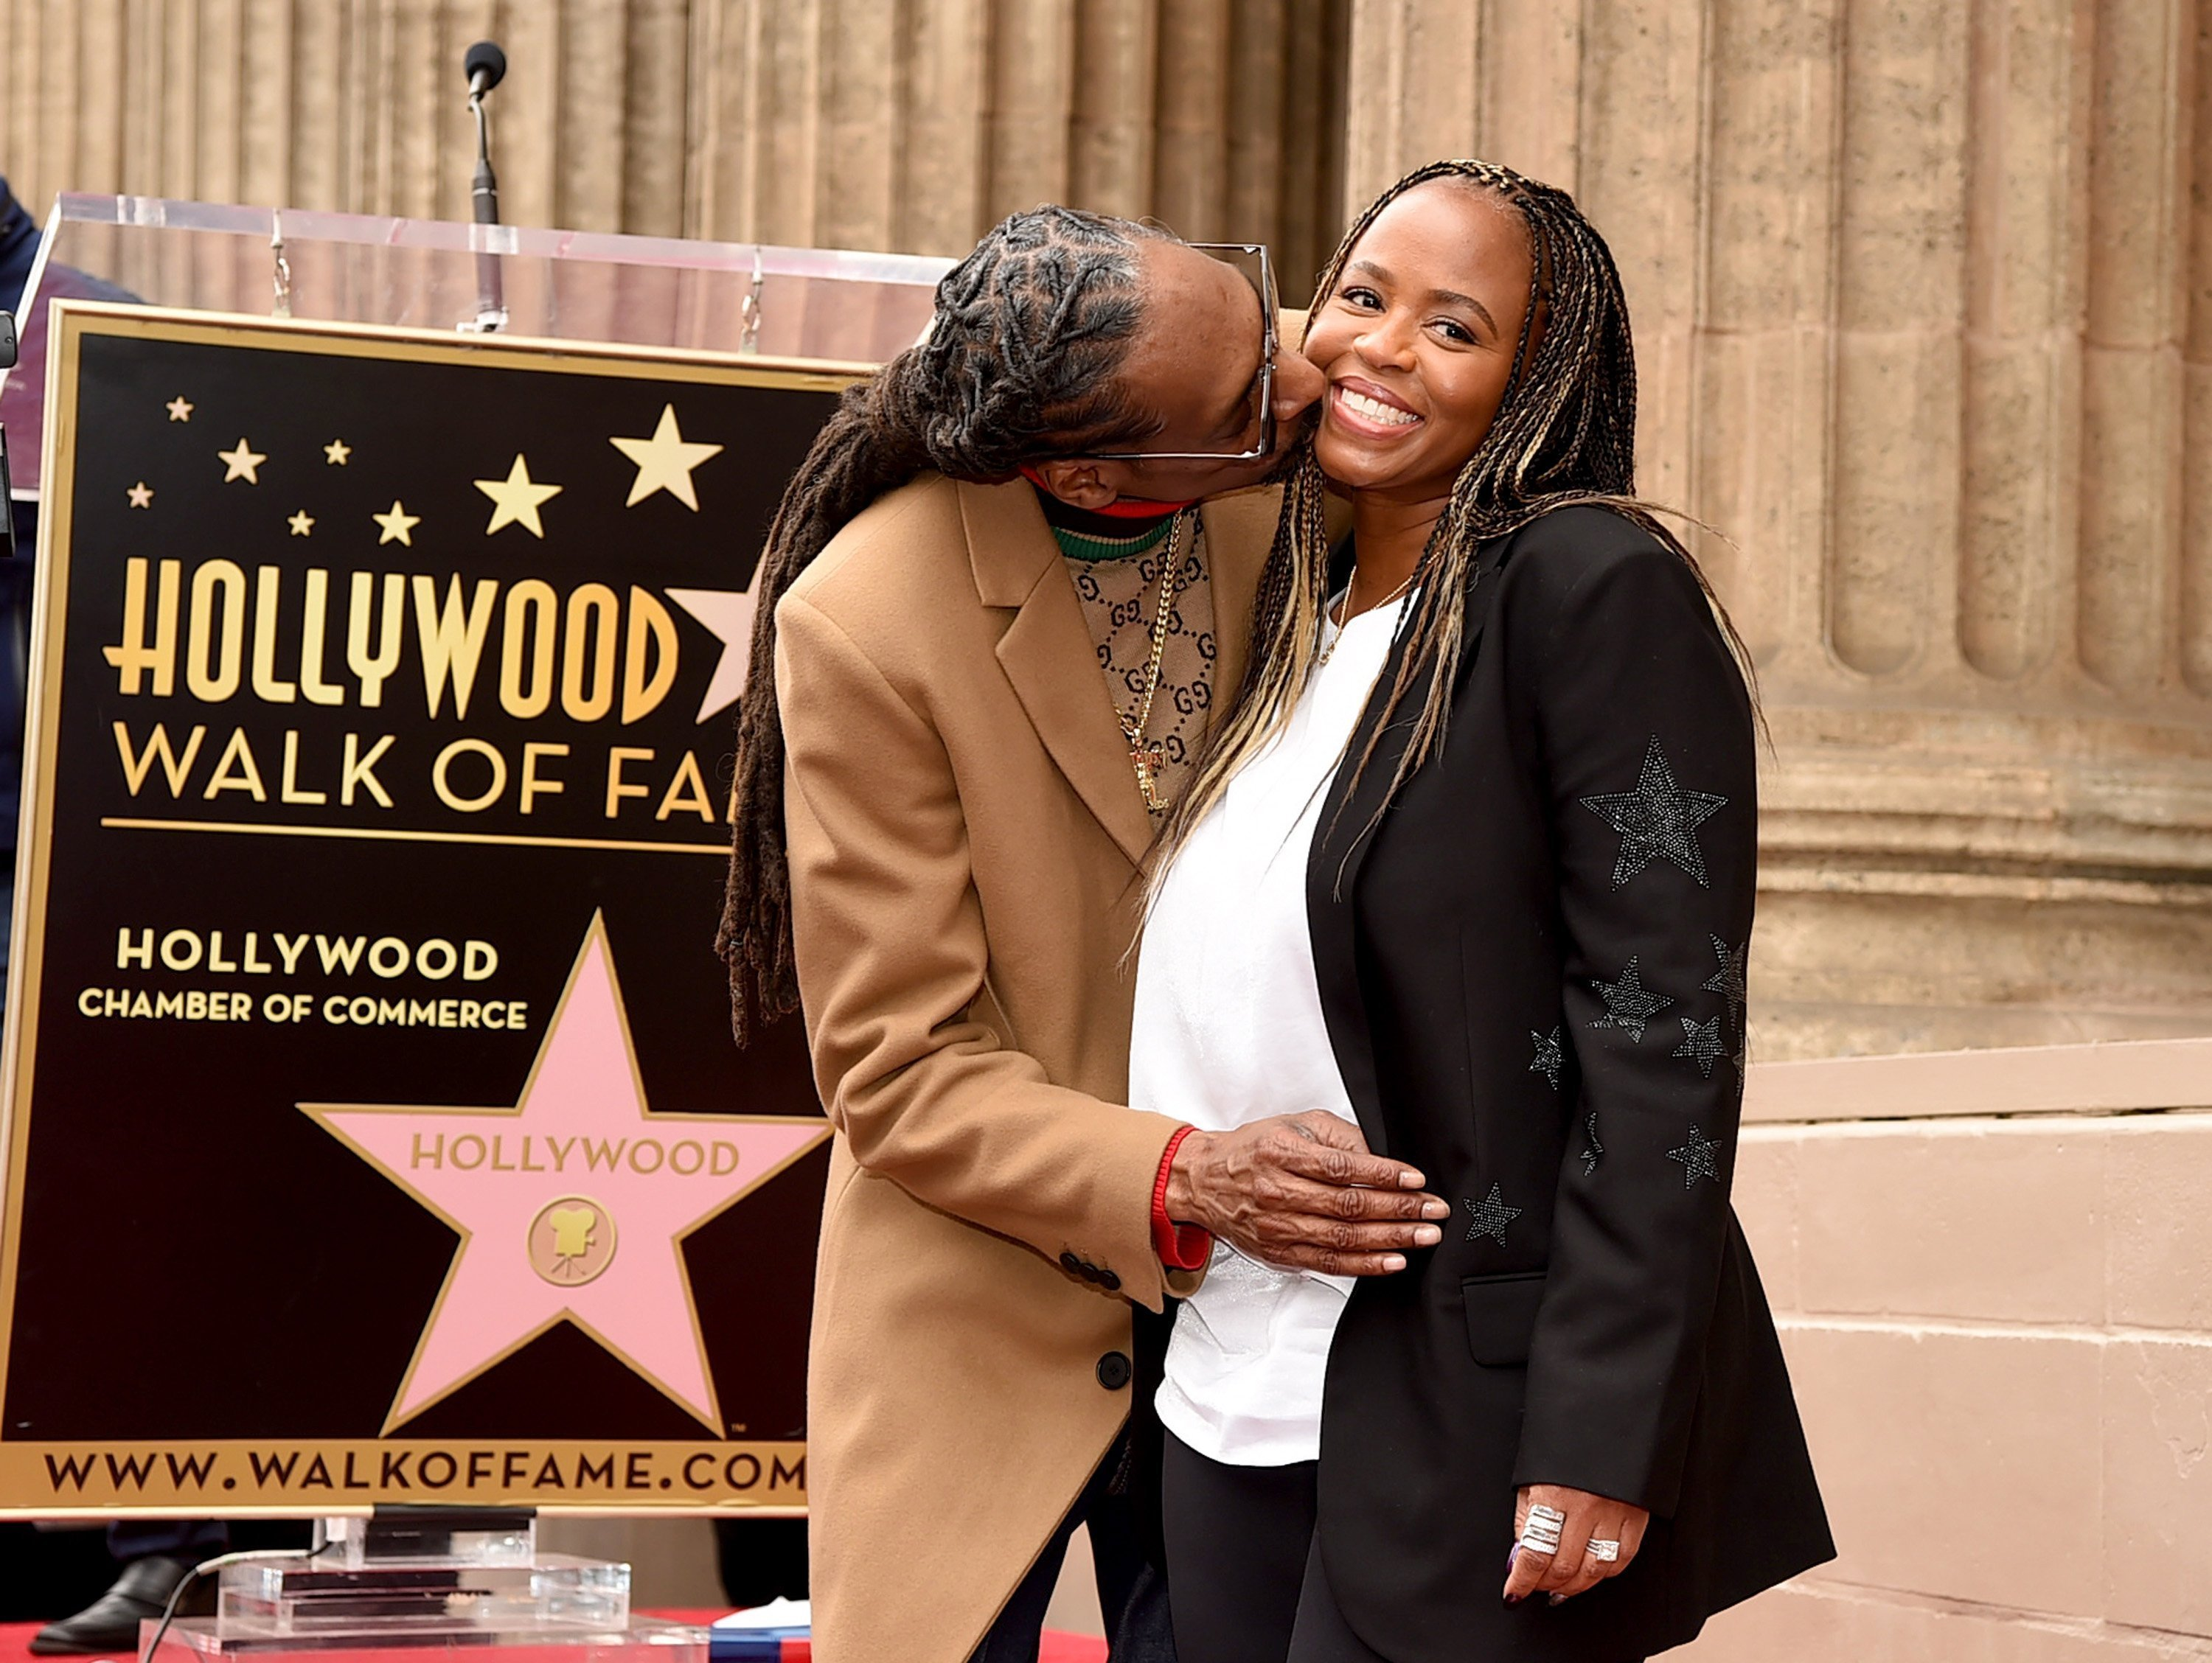 Snoop Dogg and Shante Broadus at the Hollywood Walk of Fame on Hollywood Boulevard in November 2018. | Source: Getty Images/GlobalImagesUkraine